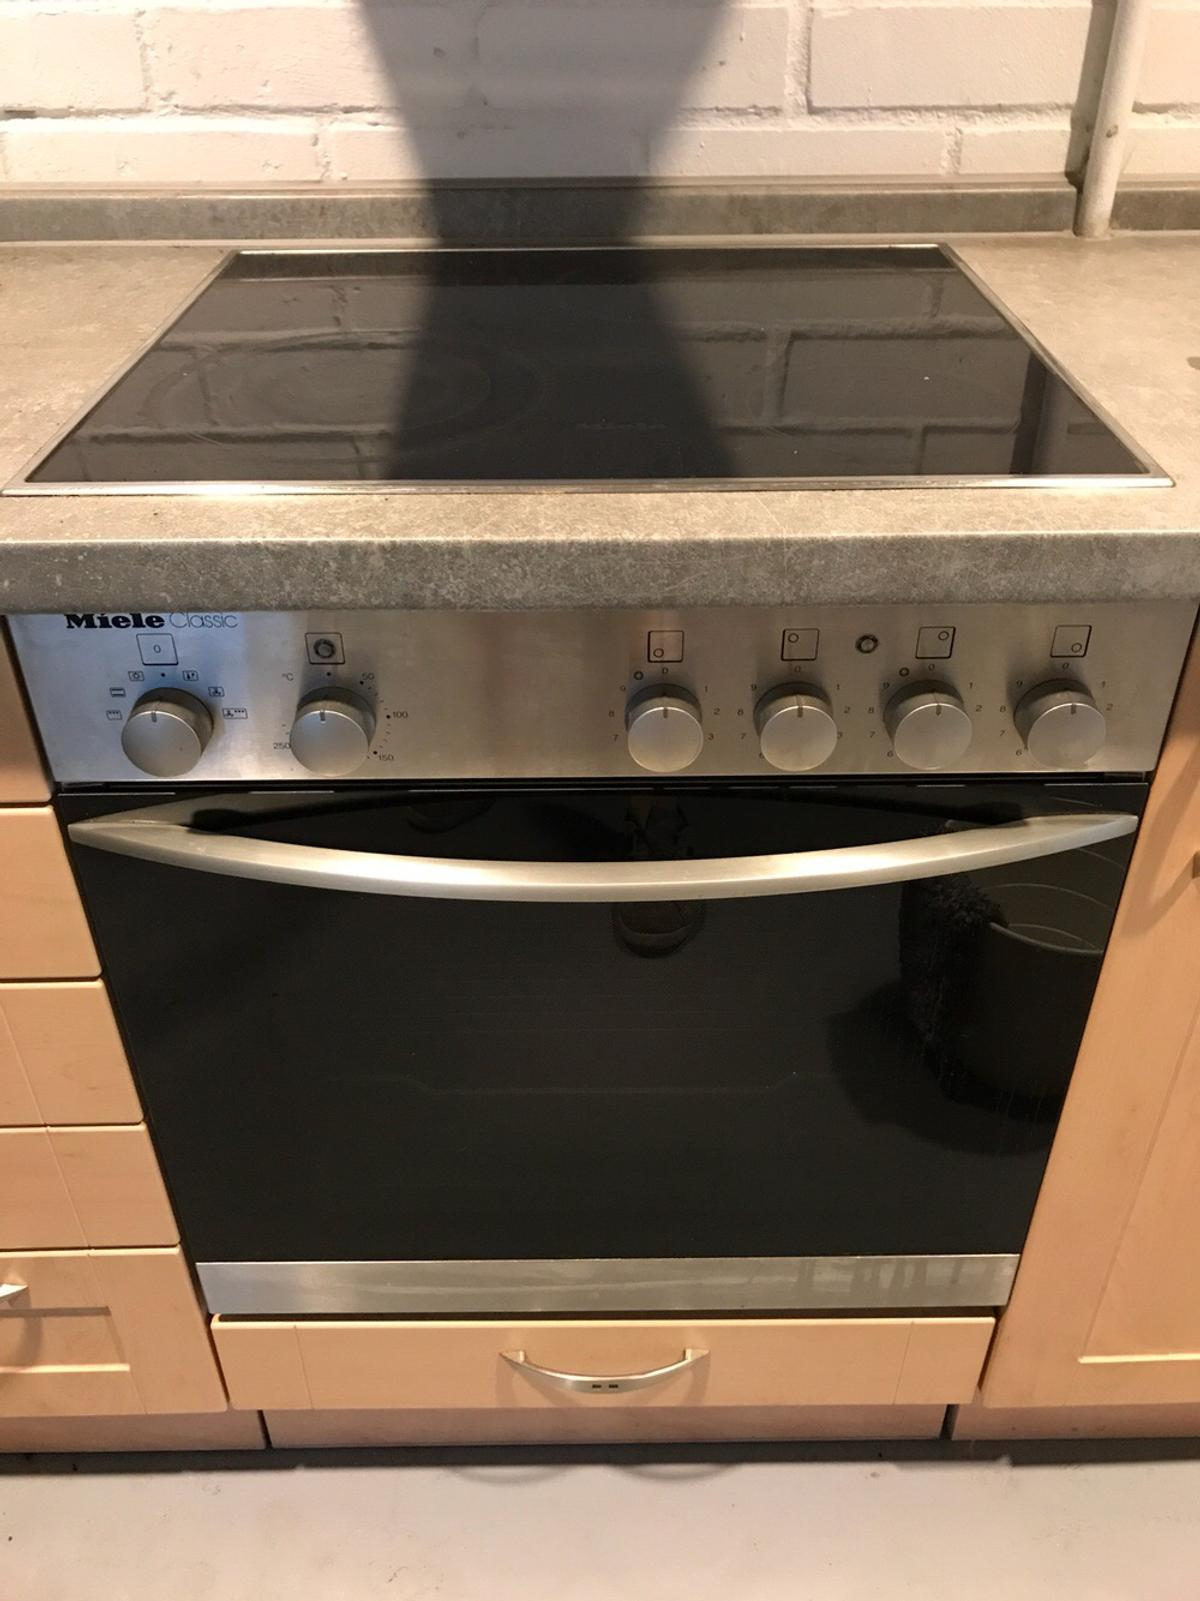 Wonderbaarlijk Einbauherd Miele Classic in 68309 Mannheim for €180.00 for sale XK-21